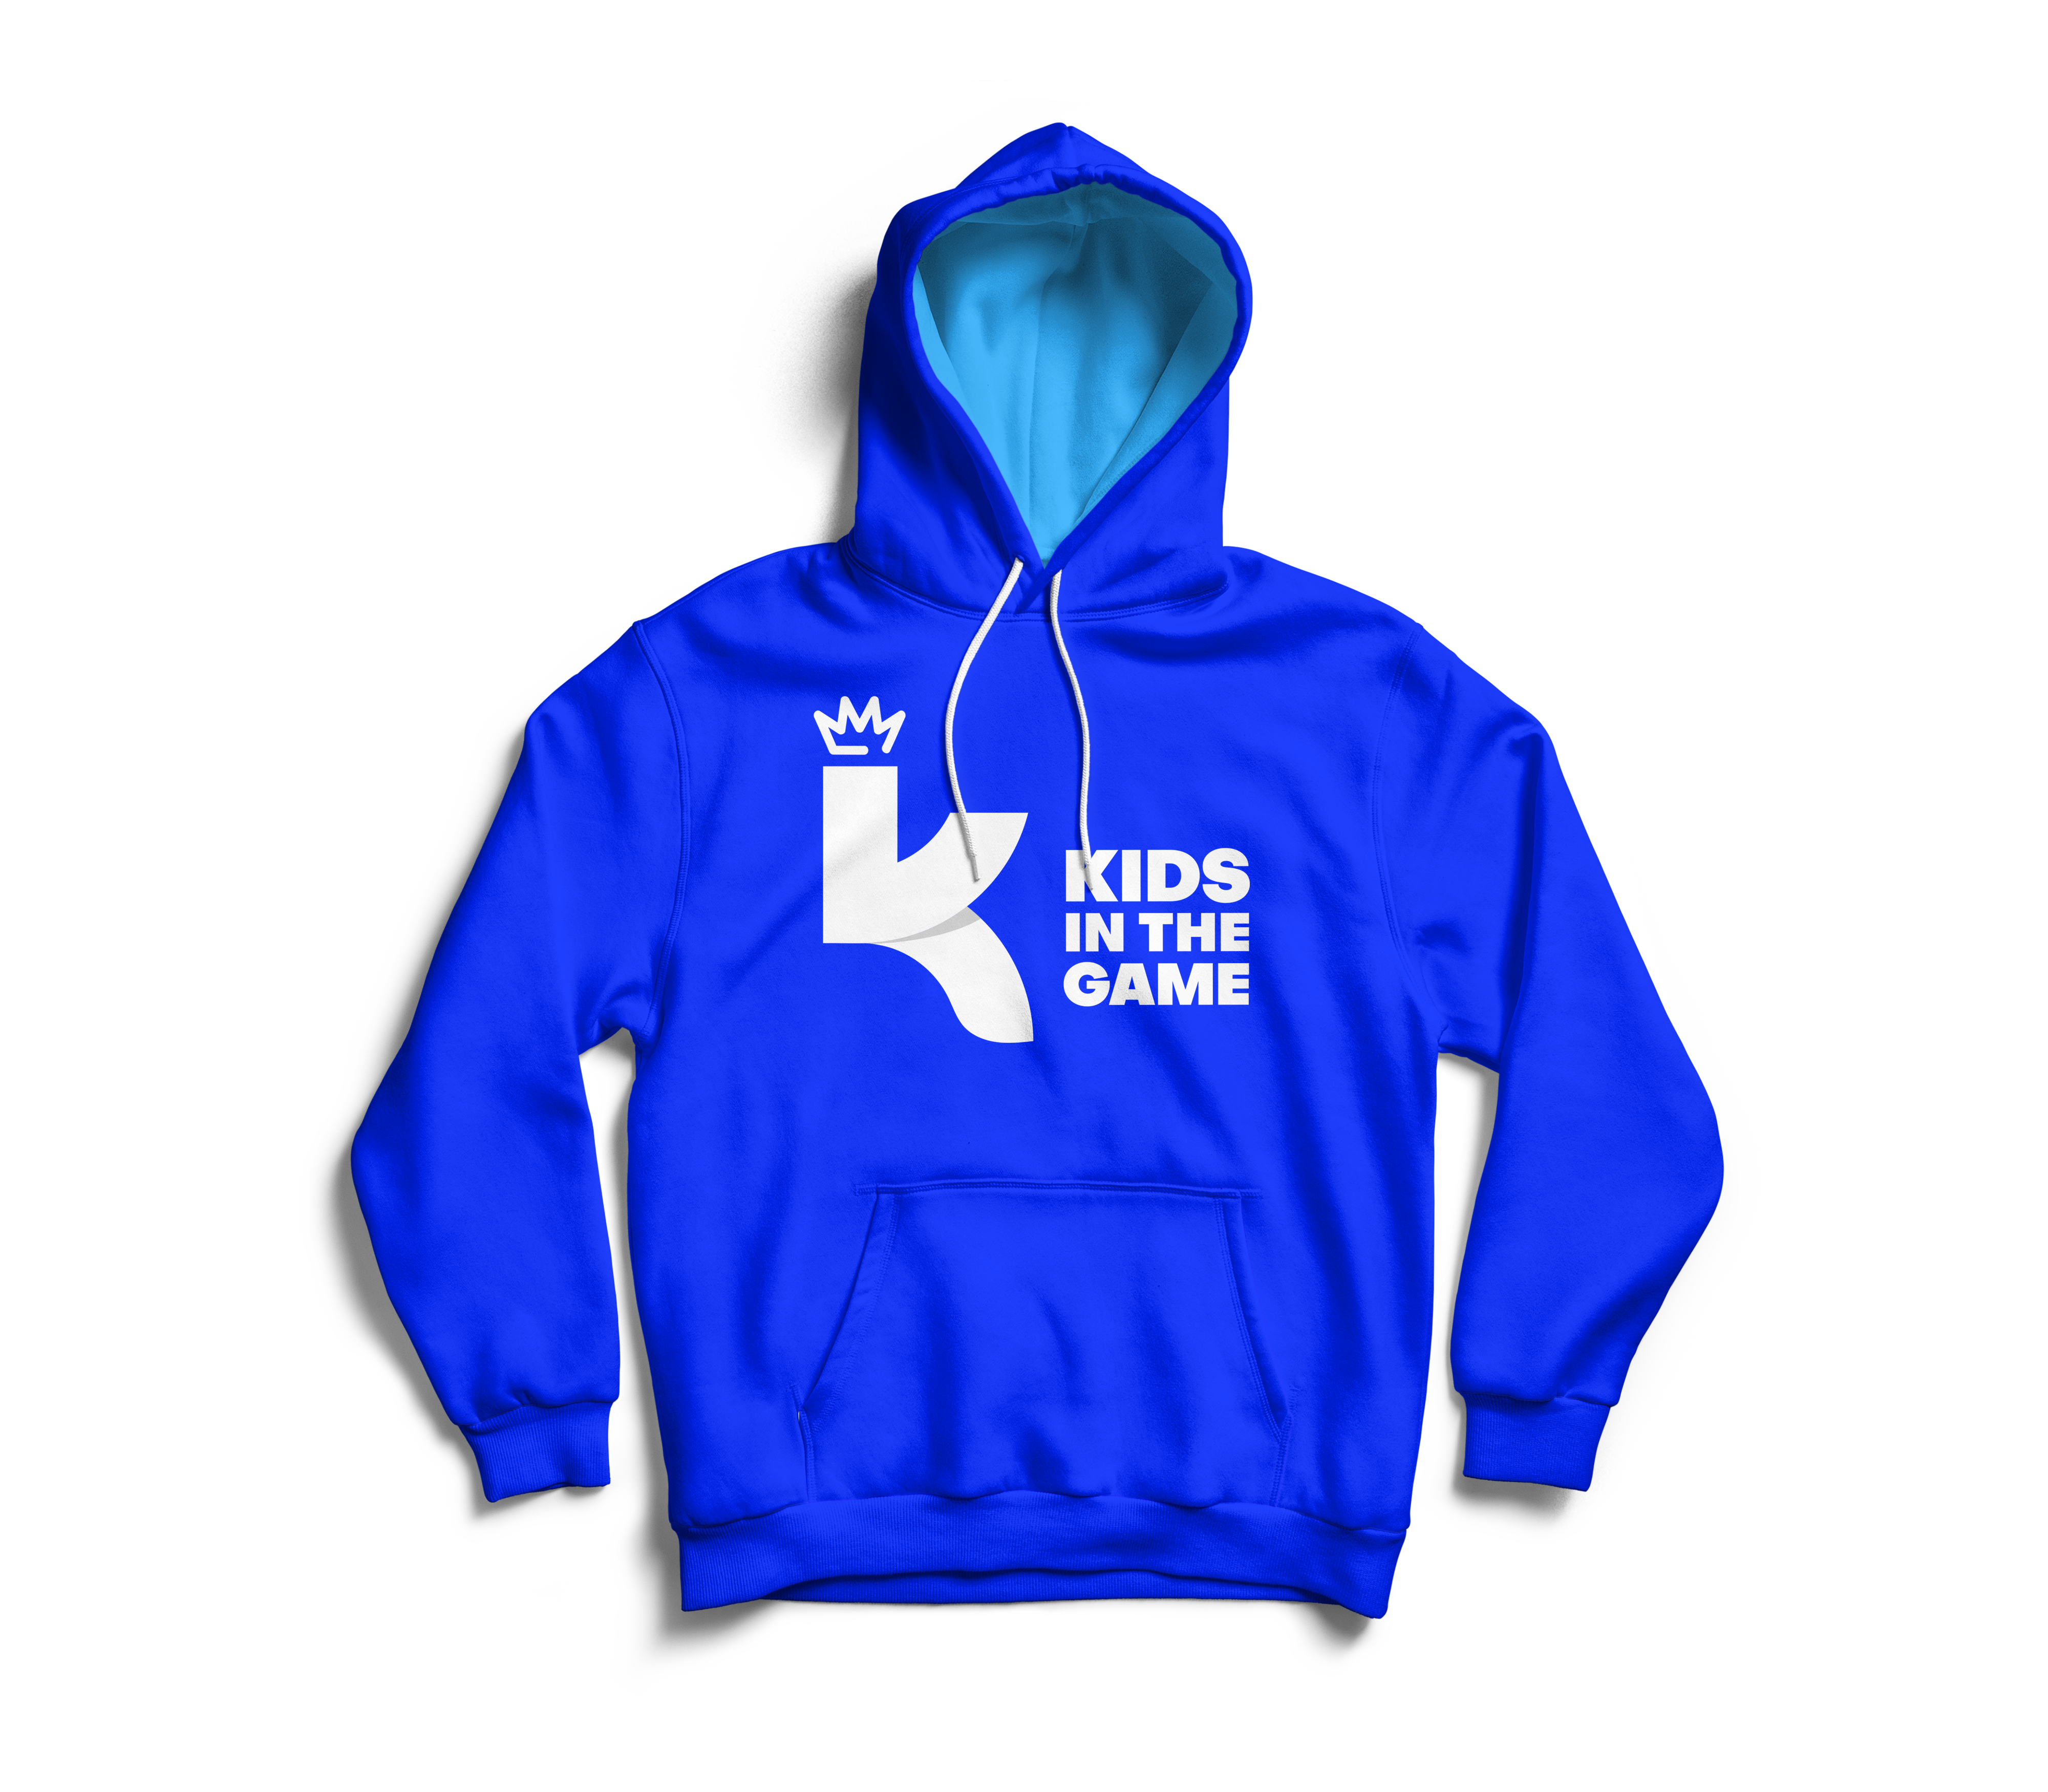 Sweatshirt design for Kids in the Game